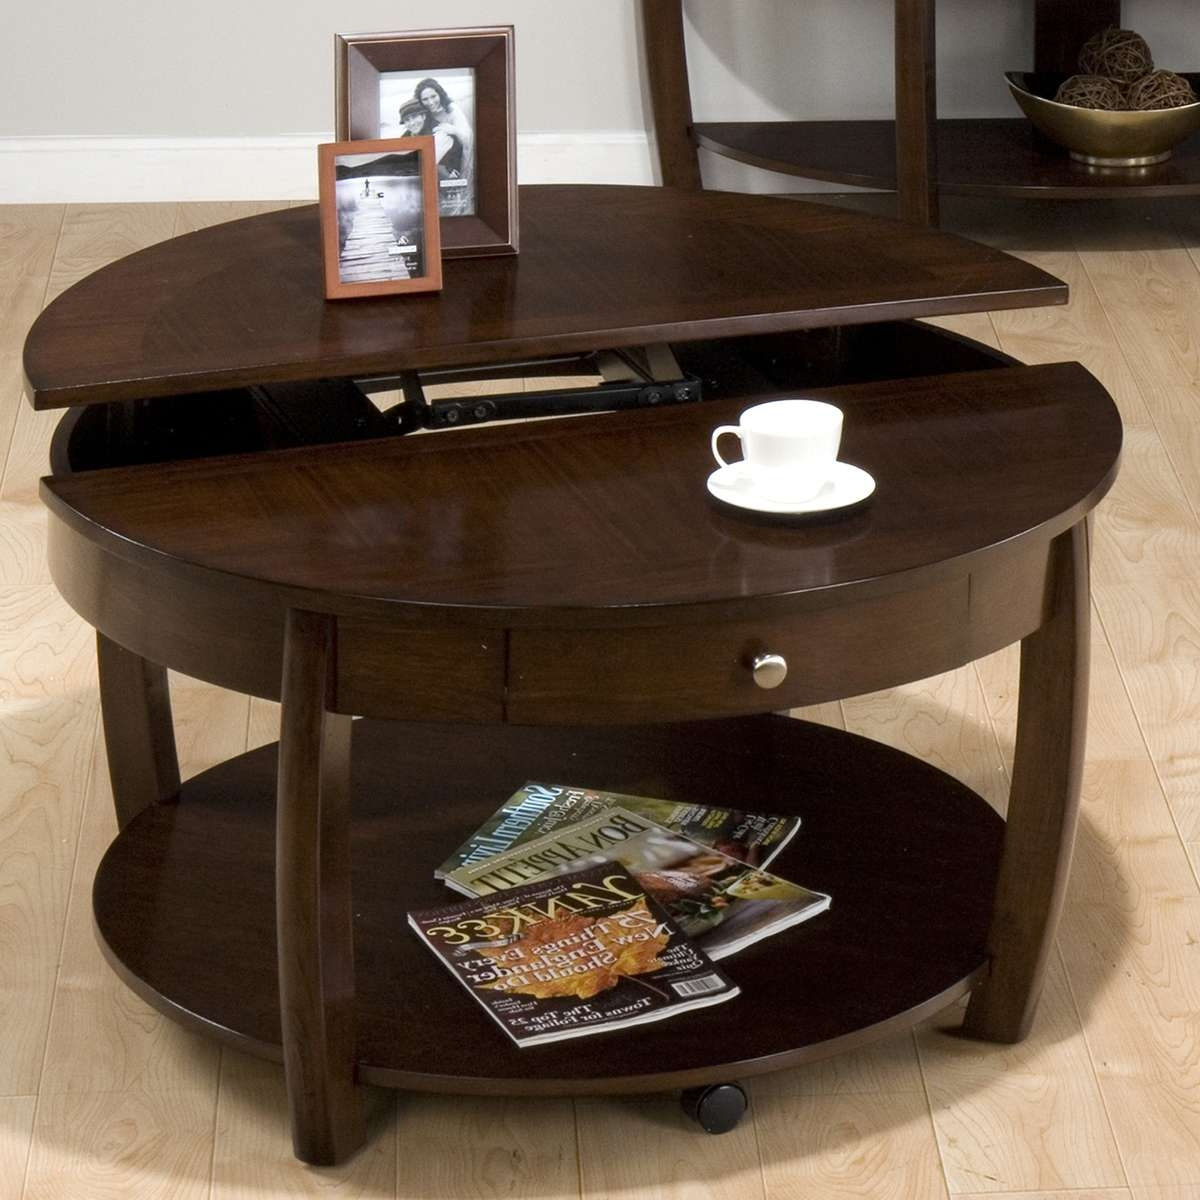 Well Liked Round Coffee Tables With Storages With Regard To The Round Coffee Tables With Storage – The Simple And Compact (View 2 of 20)